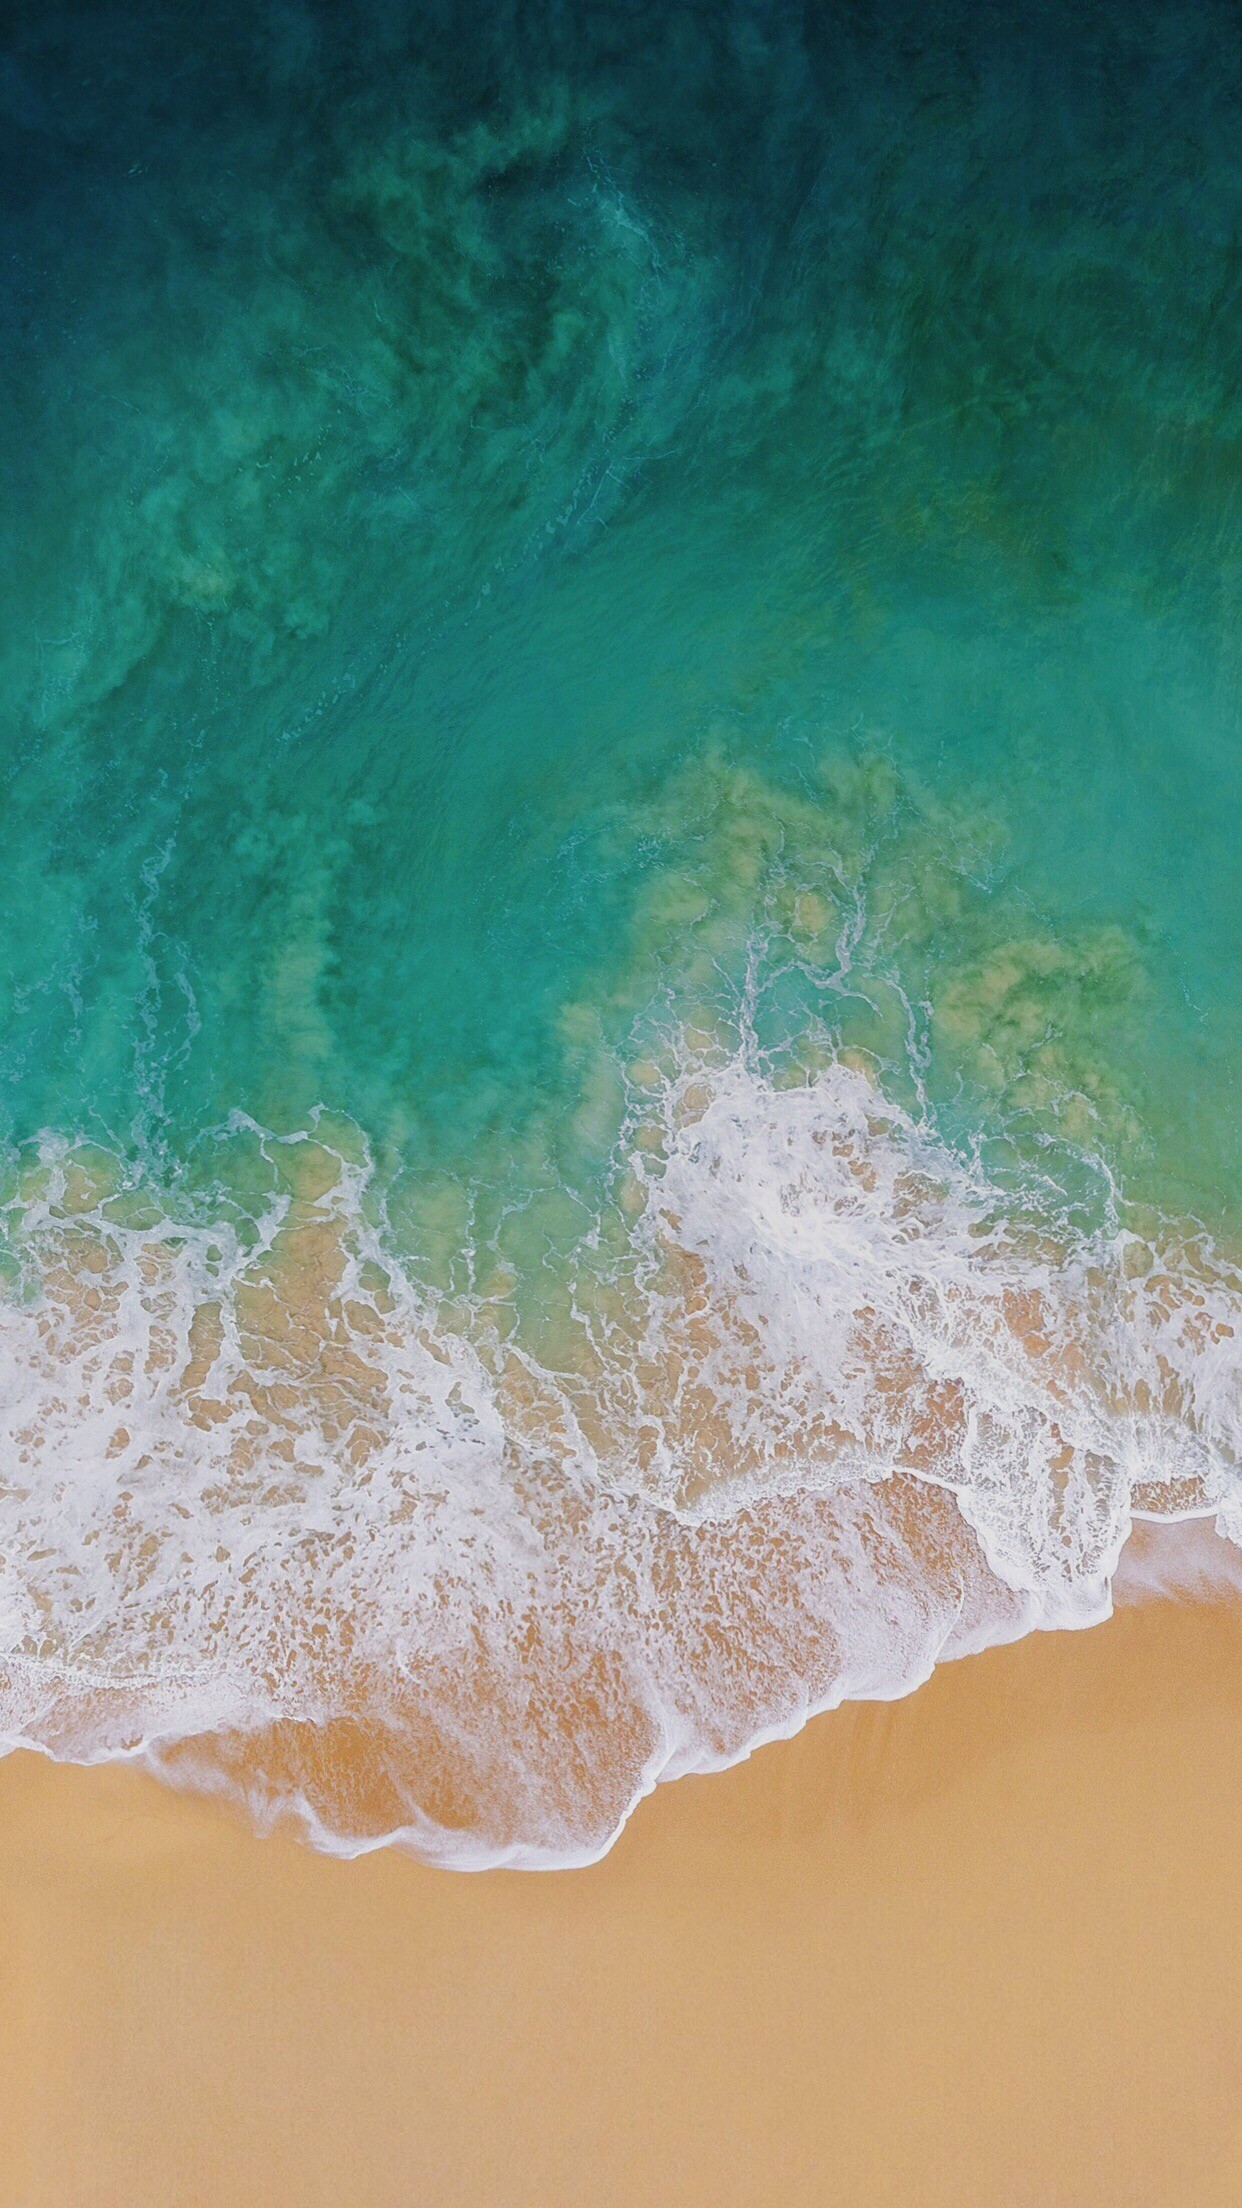 IOS 9 Stock Wallpapers 68 images 1242x2208